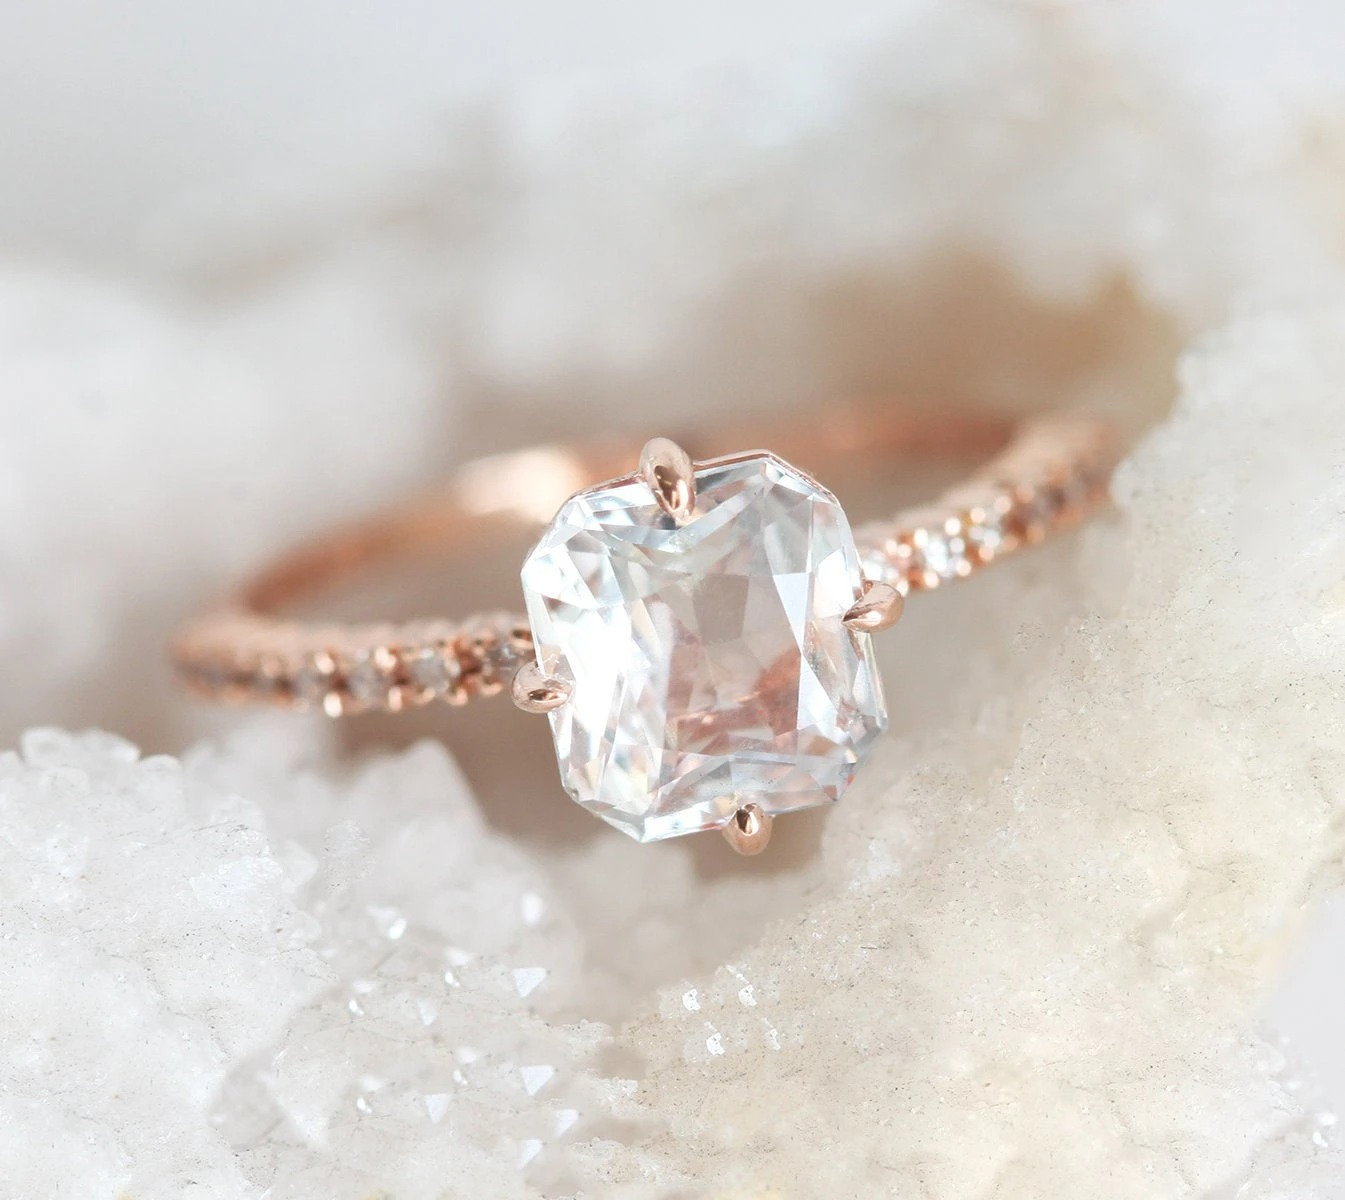 square shaped solitaire white sapphire with cut corners in a rose gold prong setting